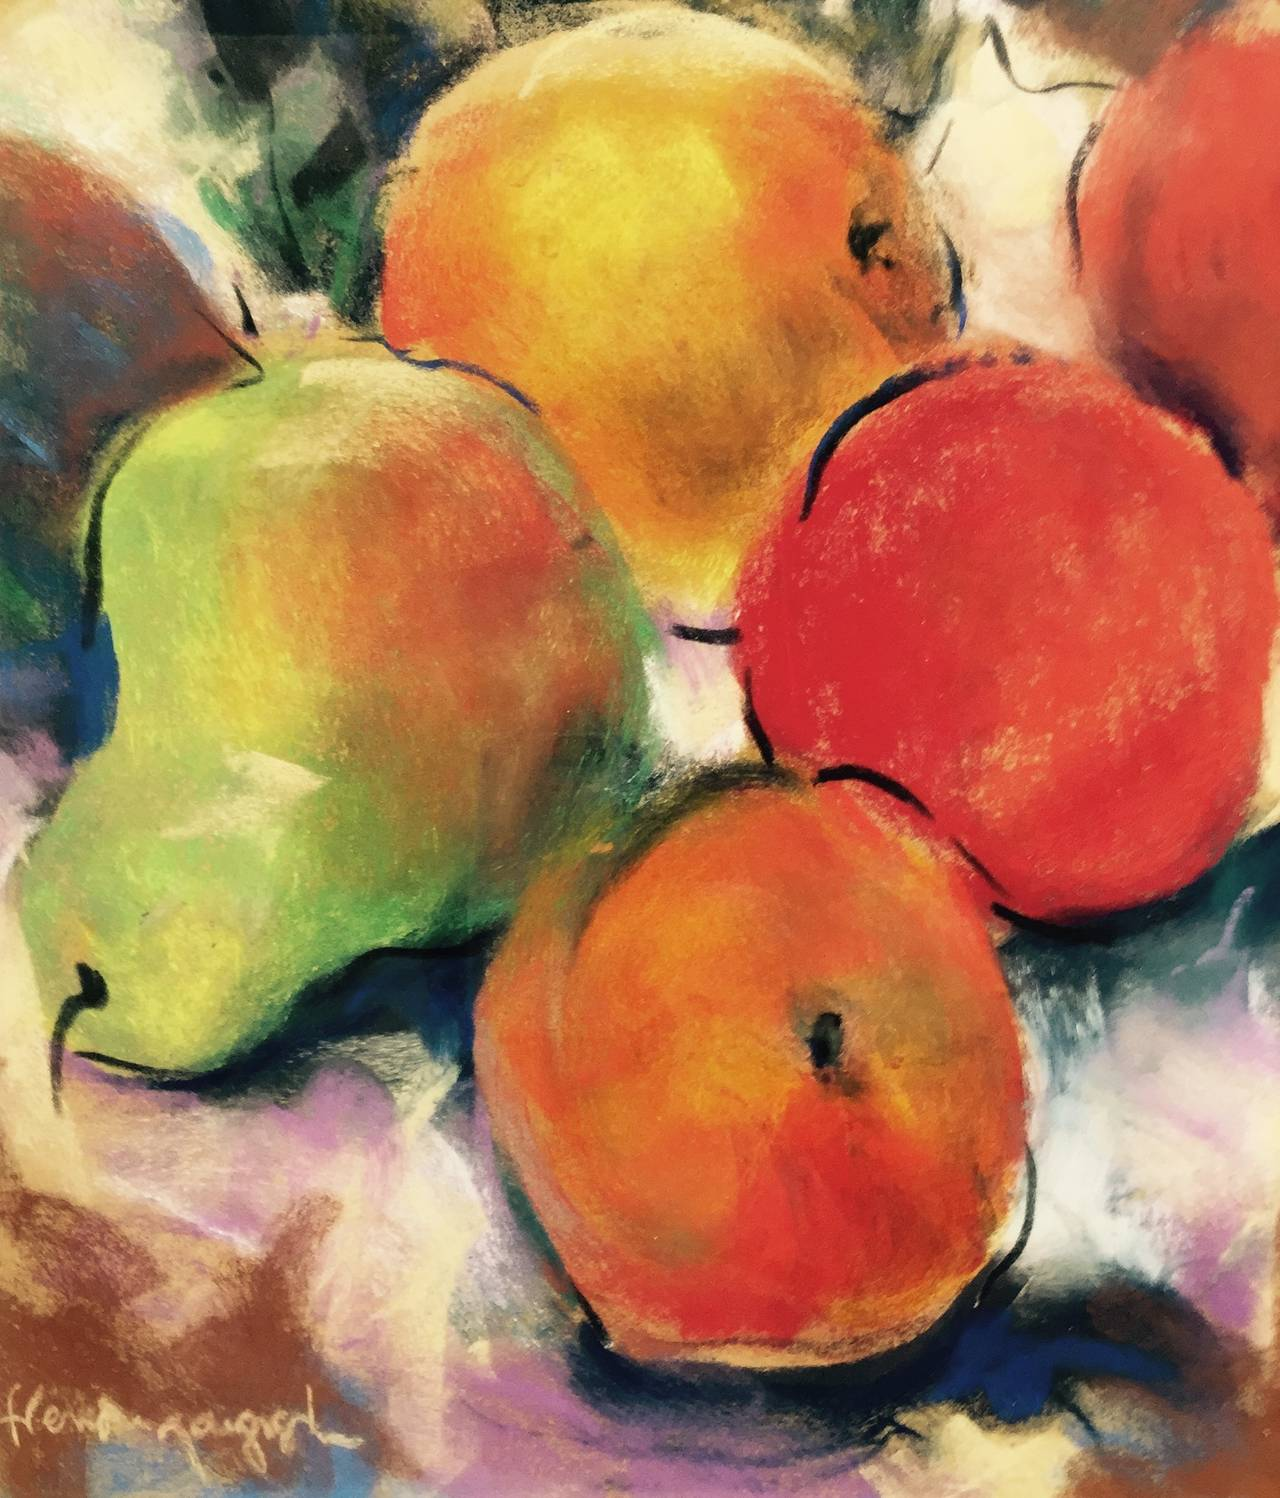 Fabulous pastel on paper by the French arist Henri Pinguenet. Done circa 1965.  His colors are brilliant and vibrant. Wonderful technique as well as a wonderful study of fruit on the table. Condition is good with gallery matting and tastefully